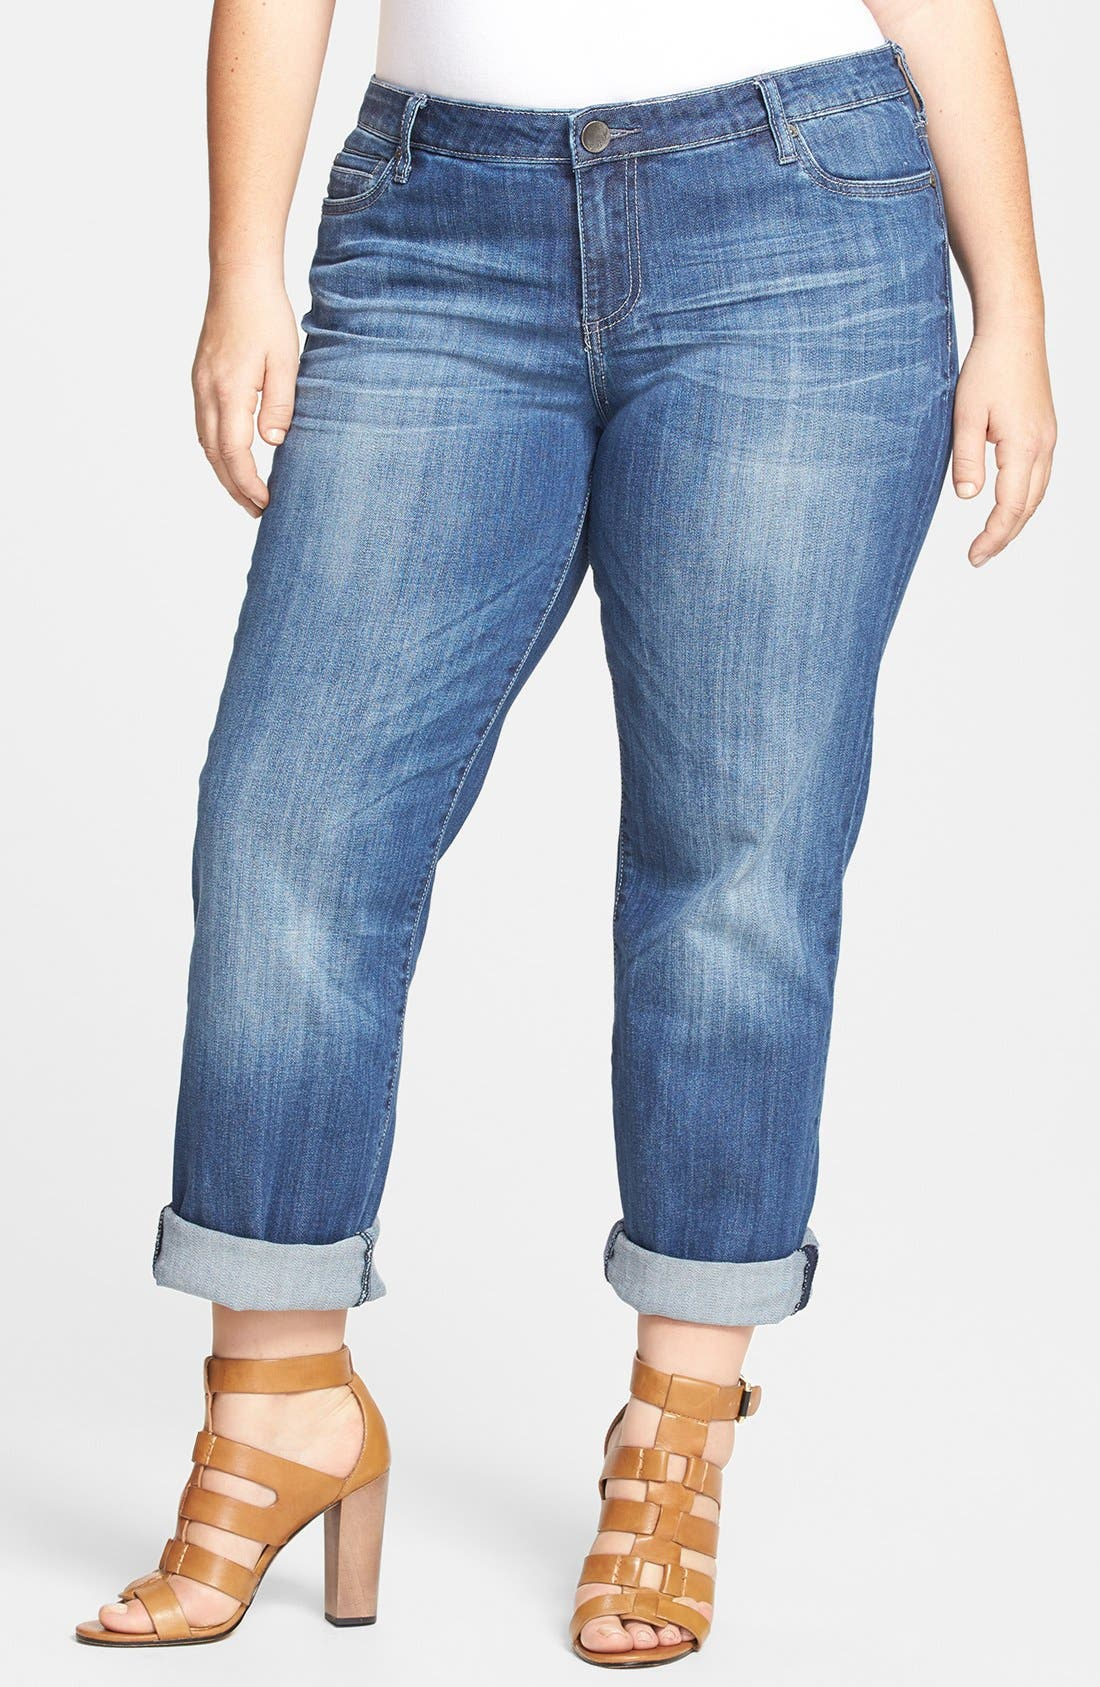 Main Image - KUT from the Kloth 'Catherine' Boyfriend Jeans (Plus Size)